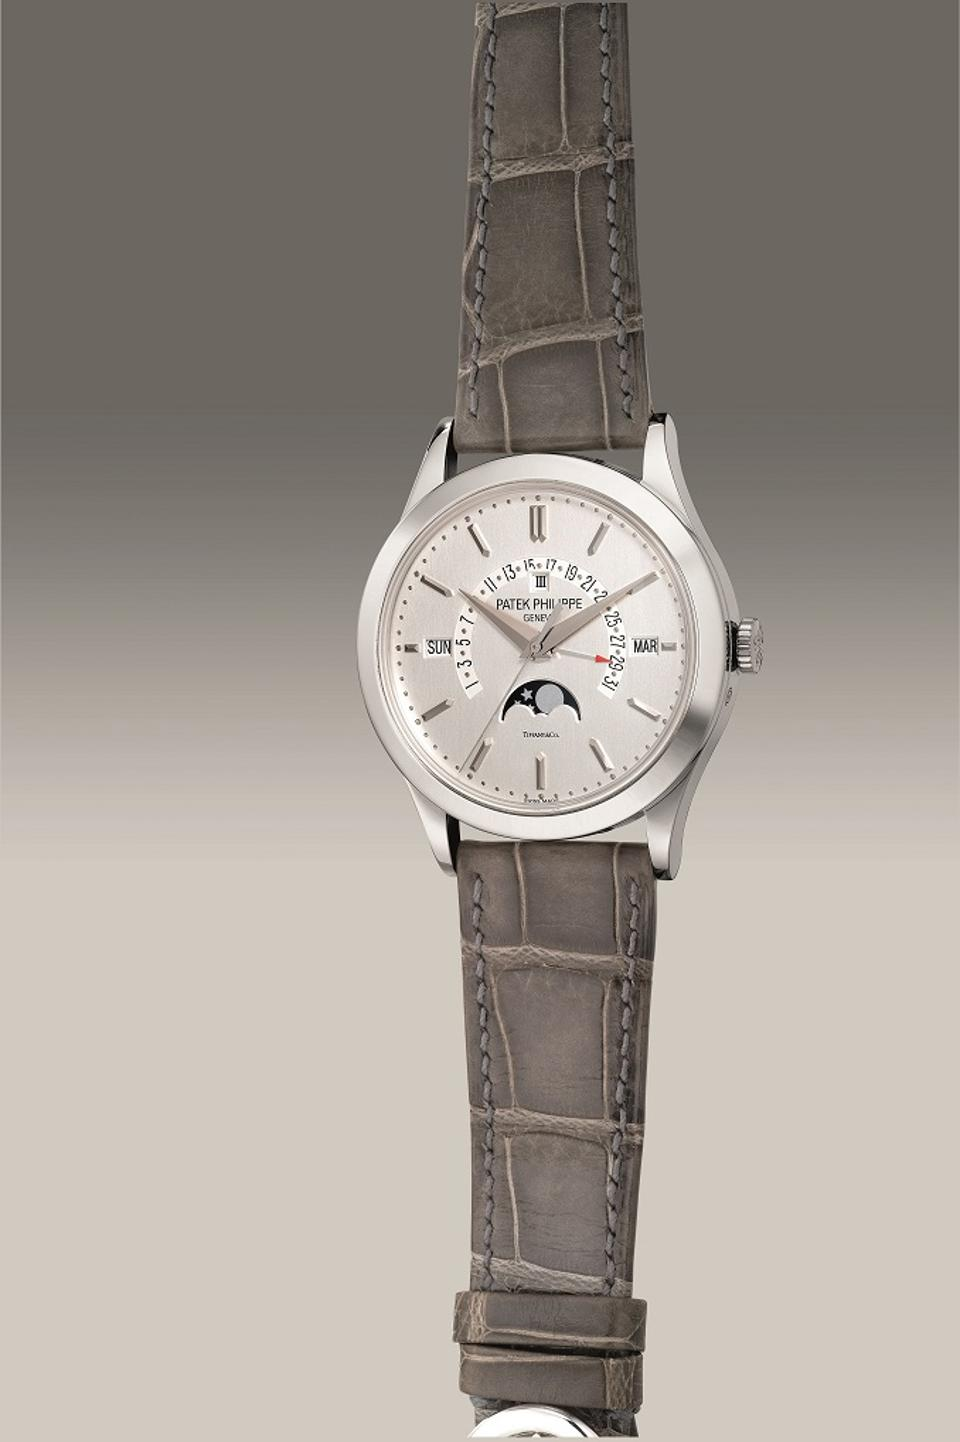 Patek Philippe Reference 5496P-001, 2015, platinum perpetual calendar retailed by Tifany & Co.